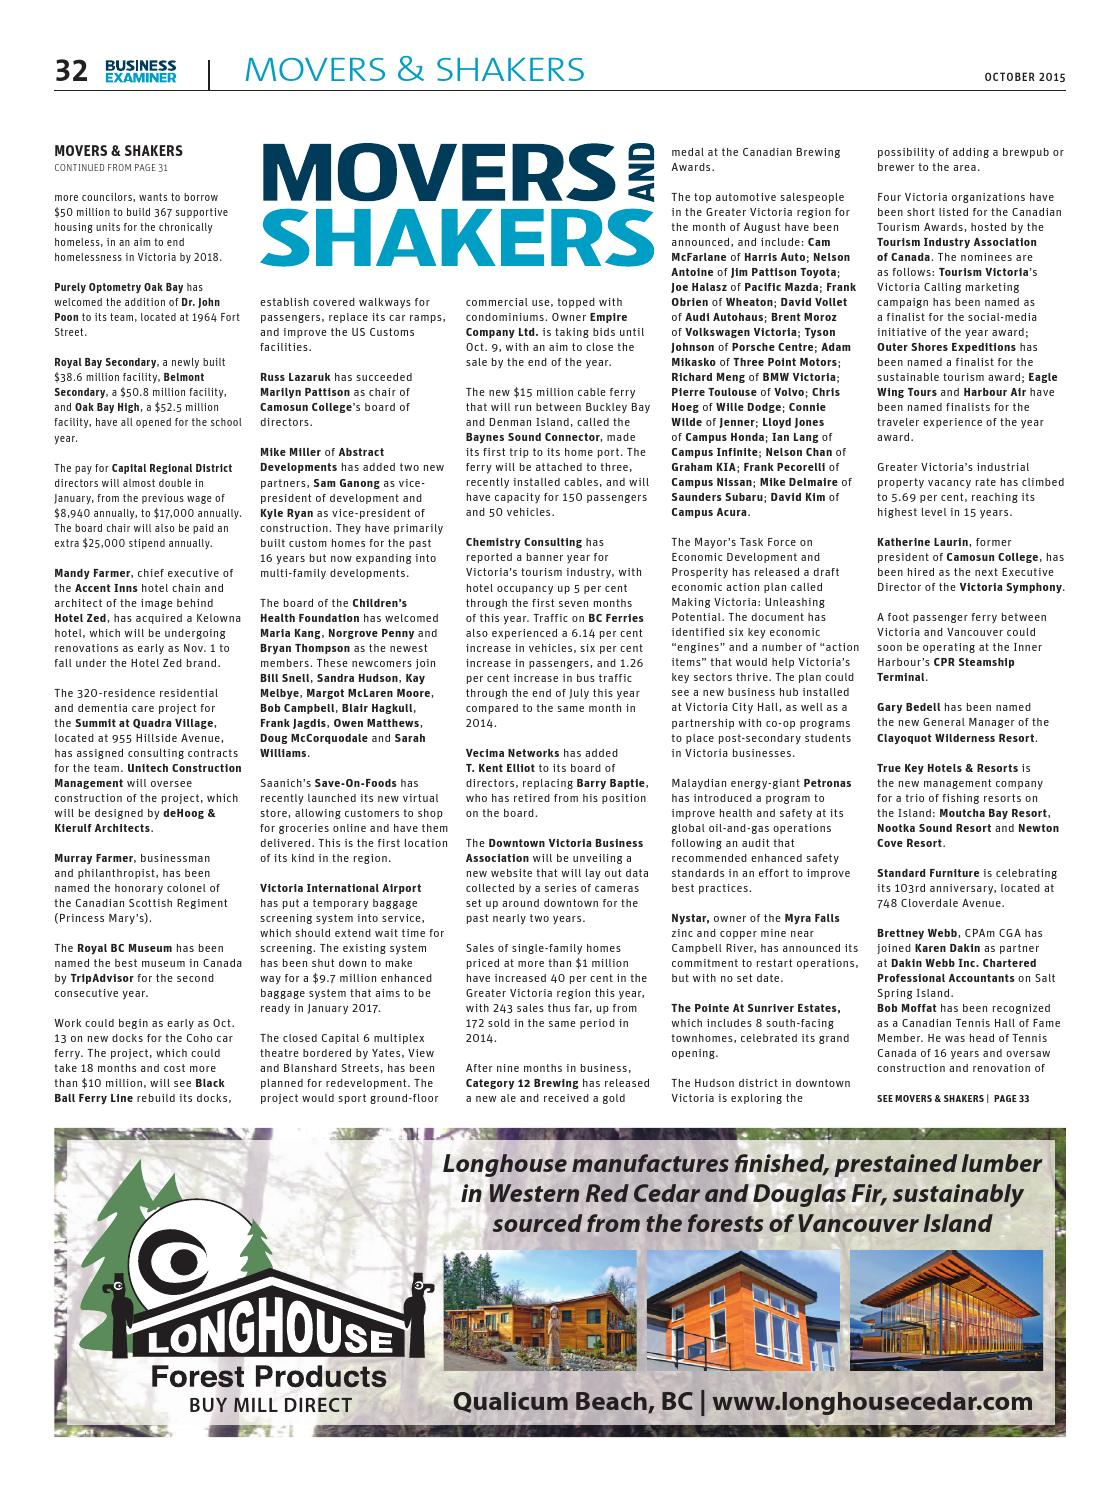 Unitech Construction & Renovation Ltd Business Examiner Victoria October 2015 By Business